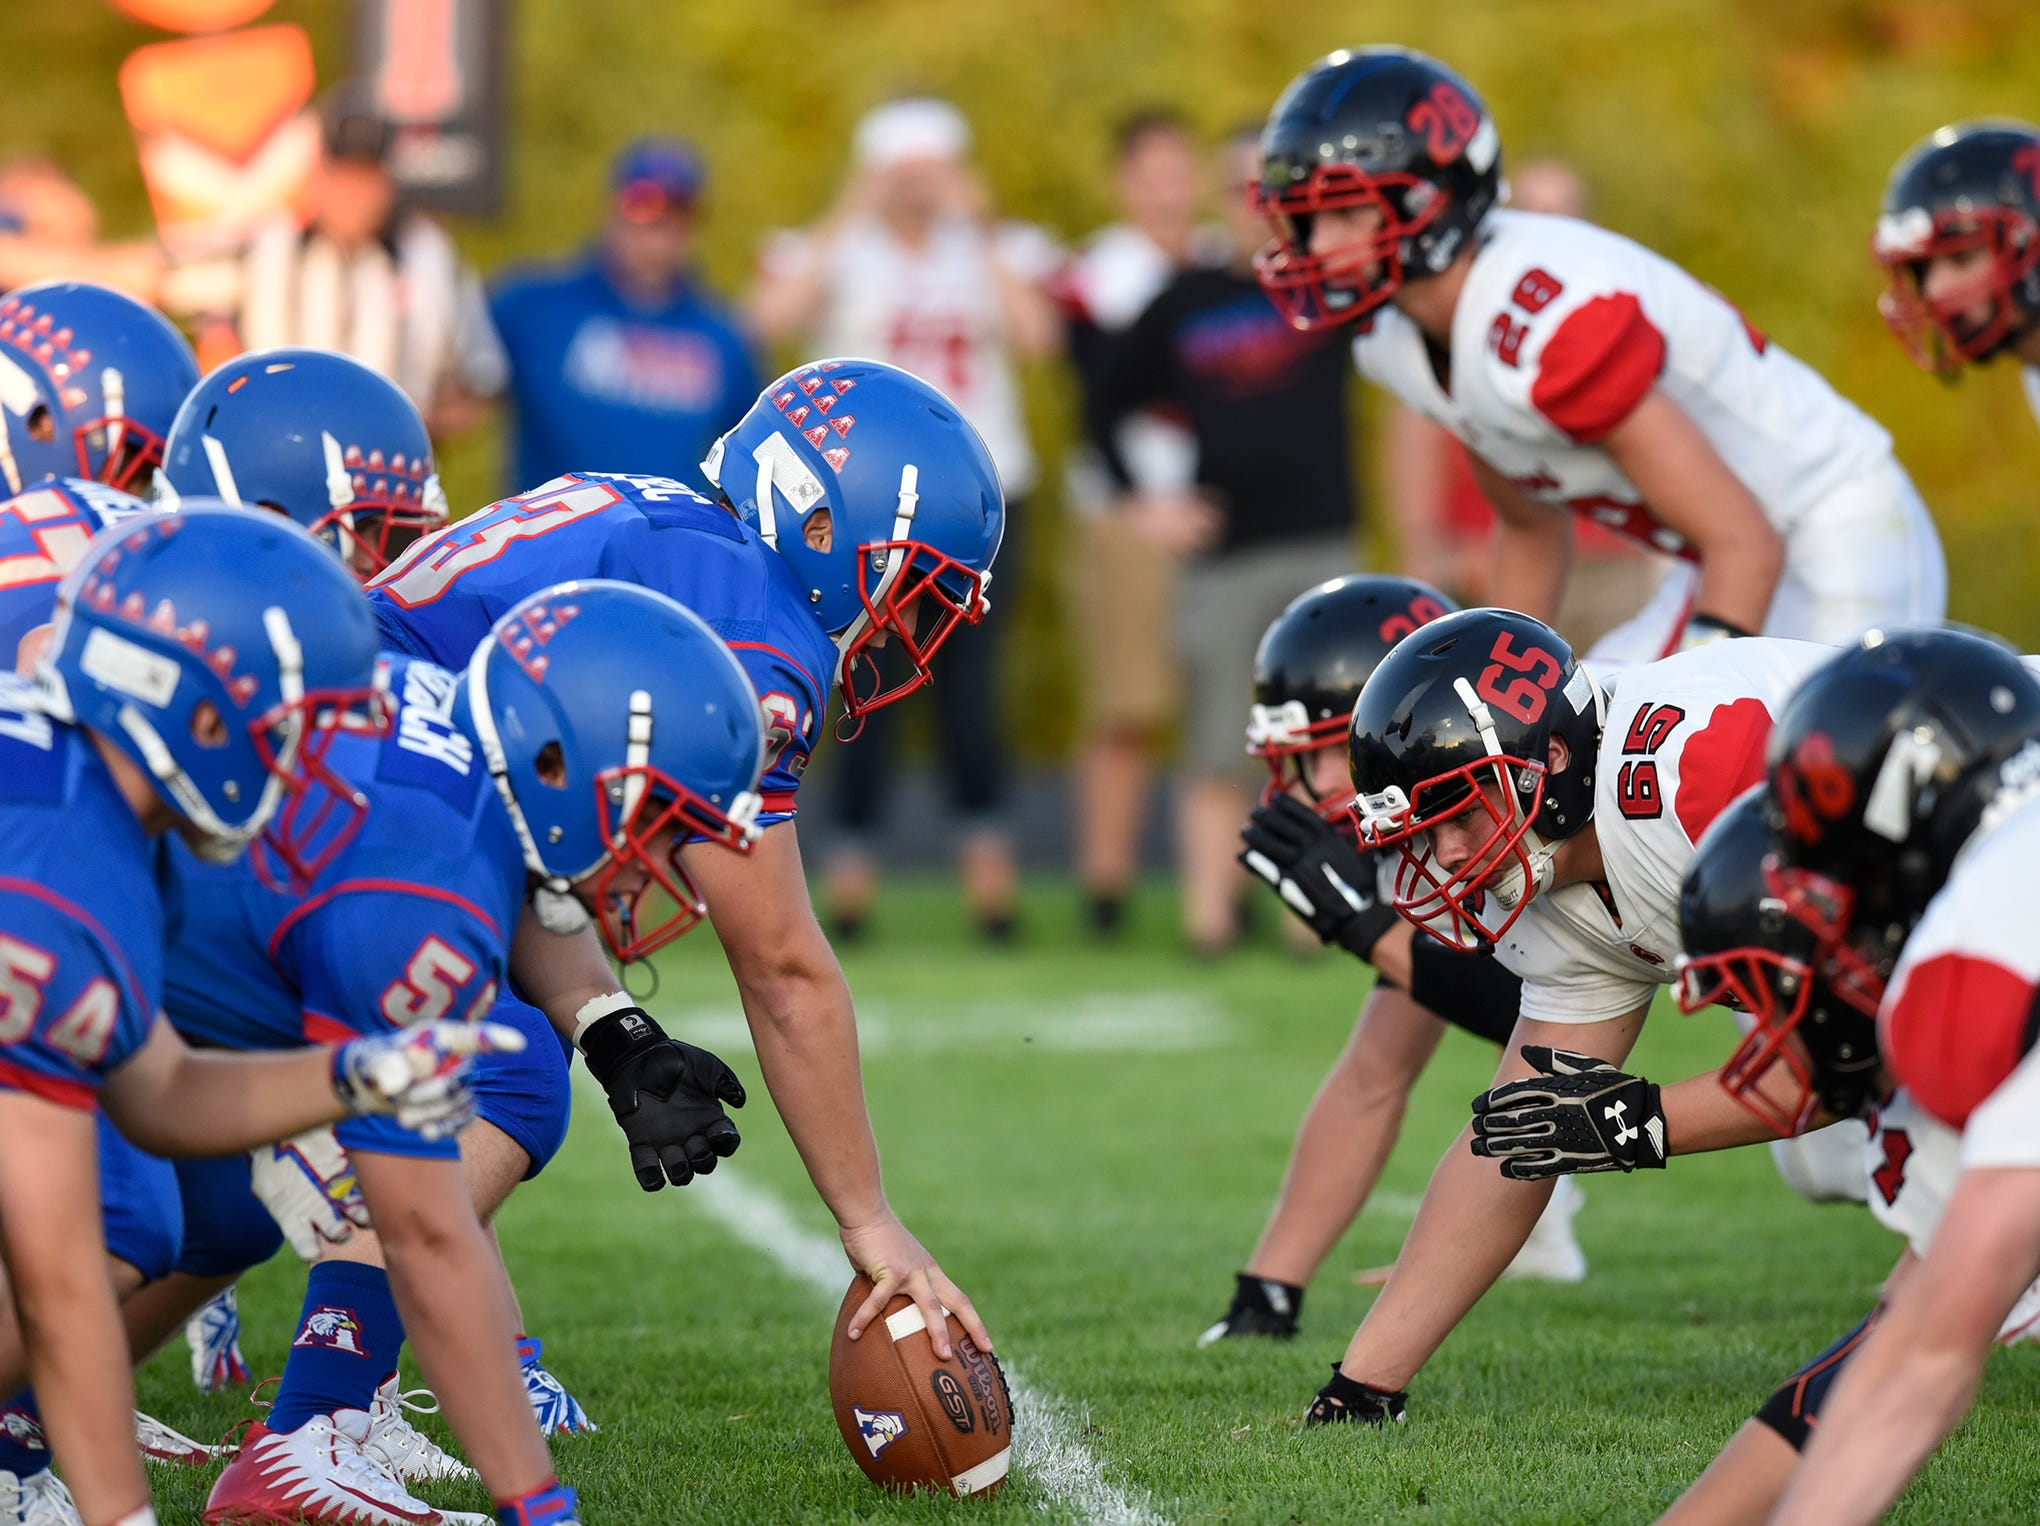 Apollo and ROCORI players face off during the Friday, Sept. 7, game at Apollo High School in St. Cloud.